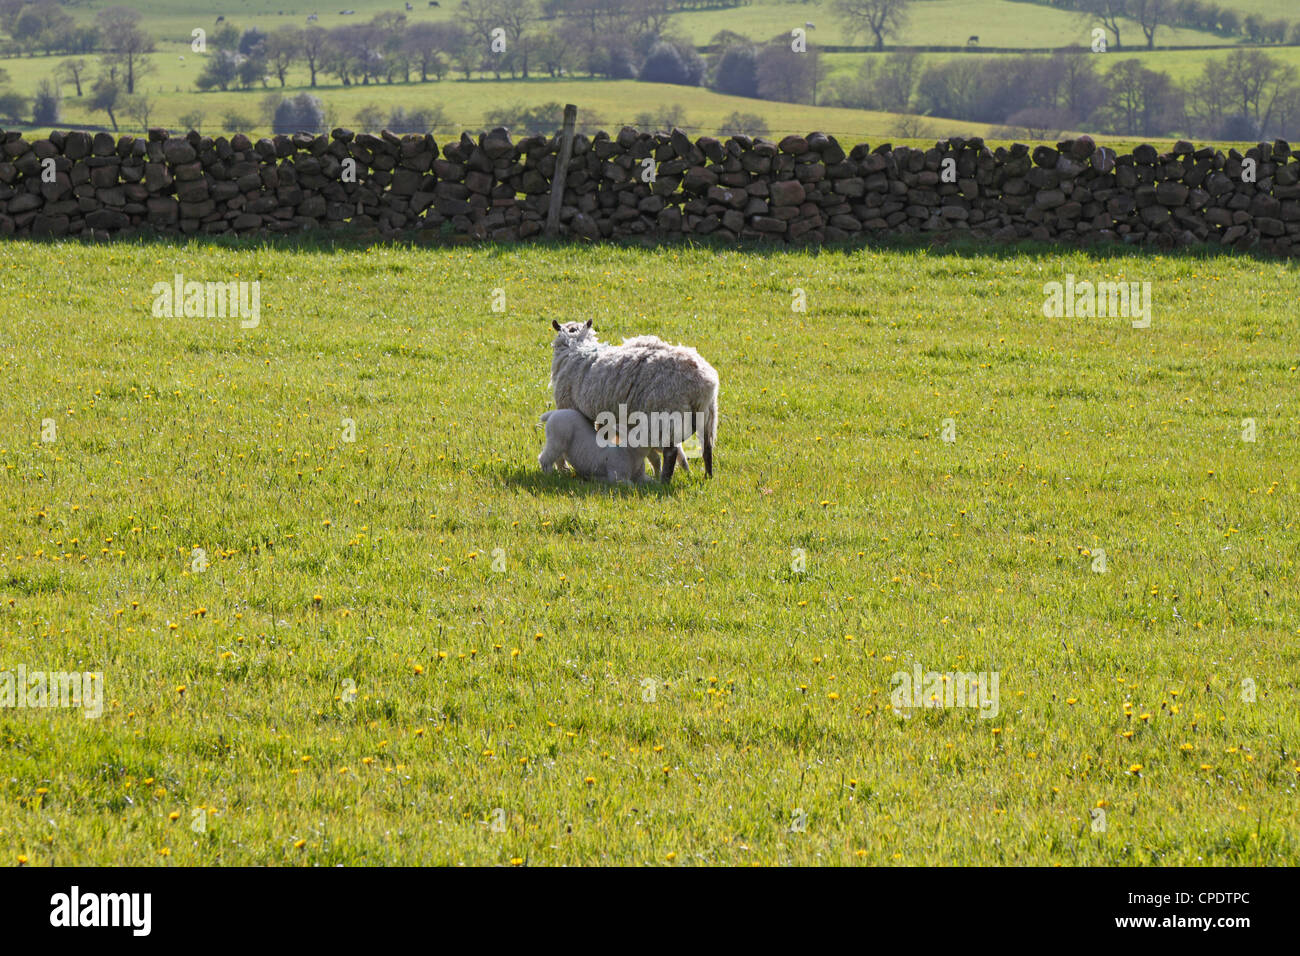 Ewe and suckling lamb in field near Leek, Staffordshire, Peak District National Park, England, UK. - Stock Image